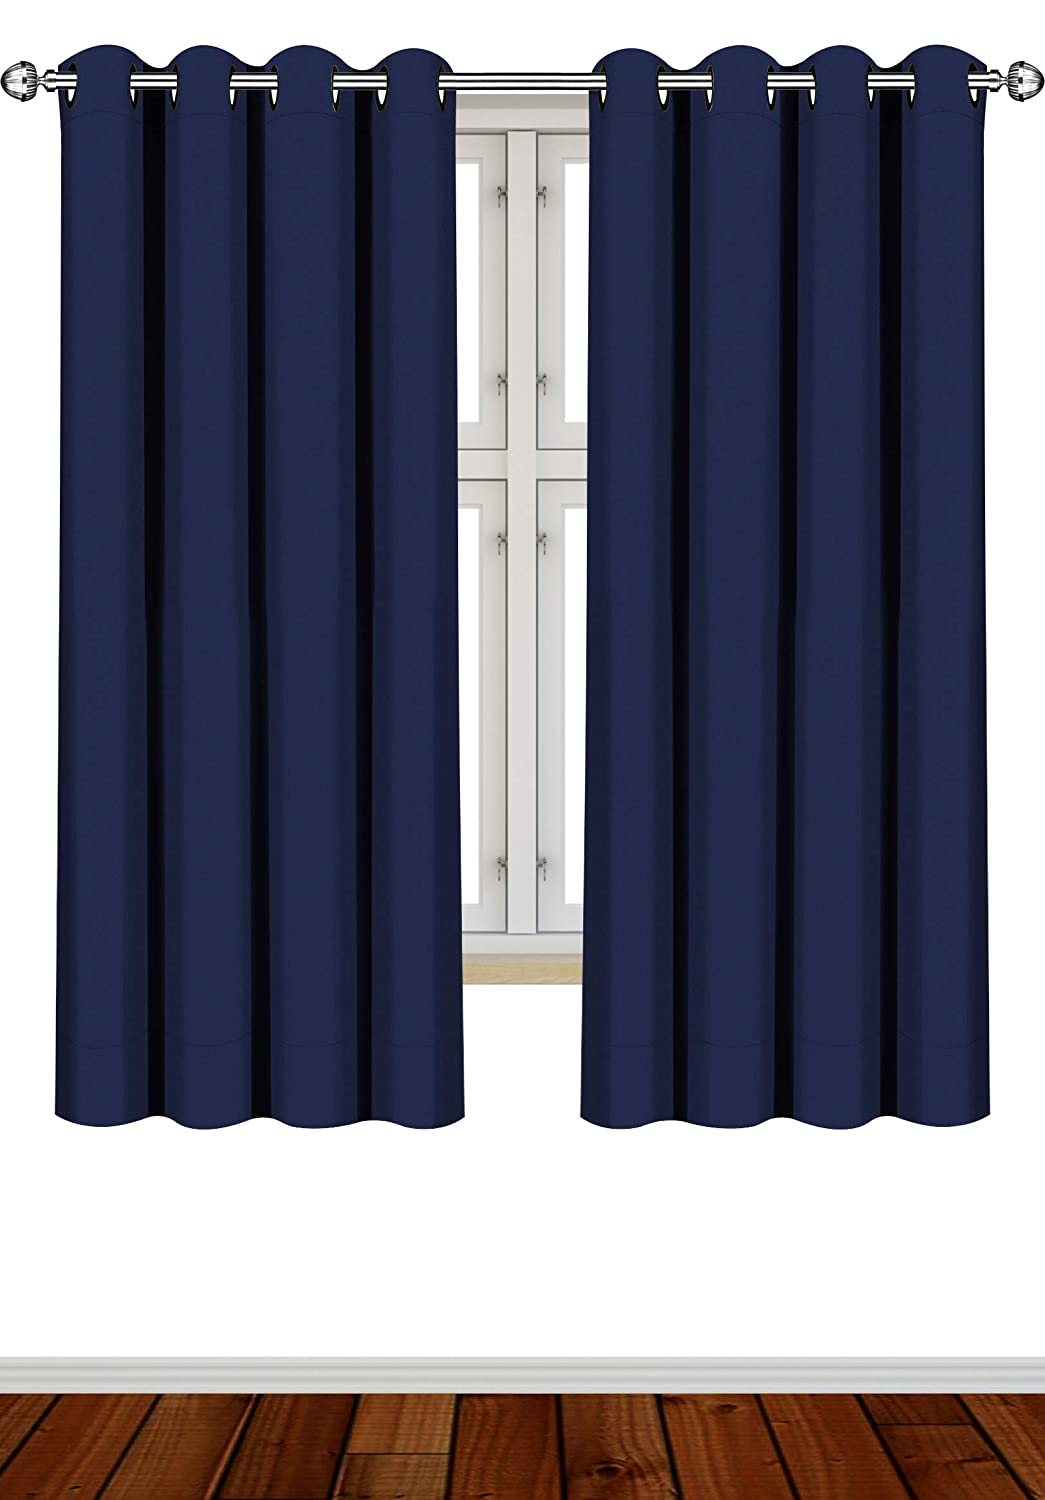 Utopia Bedding 2 Panels Eyelet Blackout Curtains Thermal Insulated for Bedroom, 46 x 54 Inches, Navy (Navy Blue)